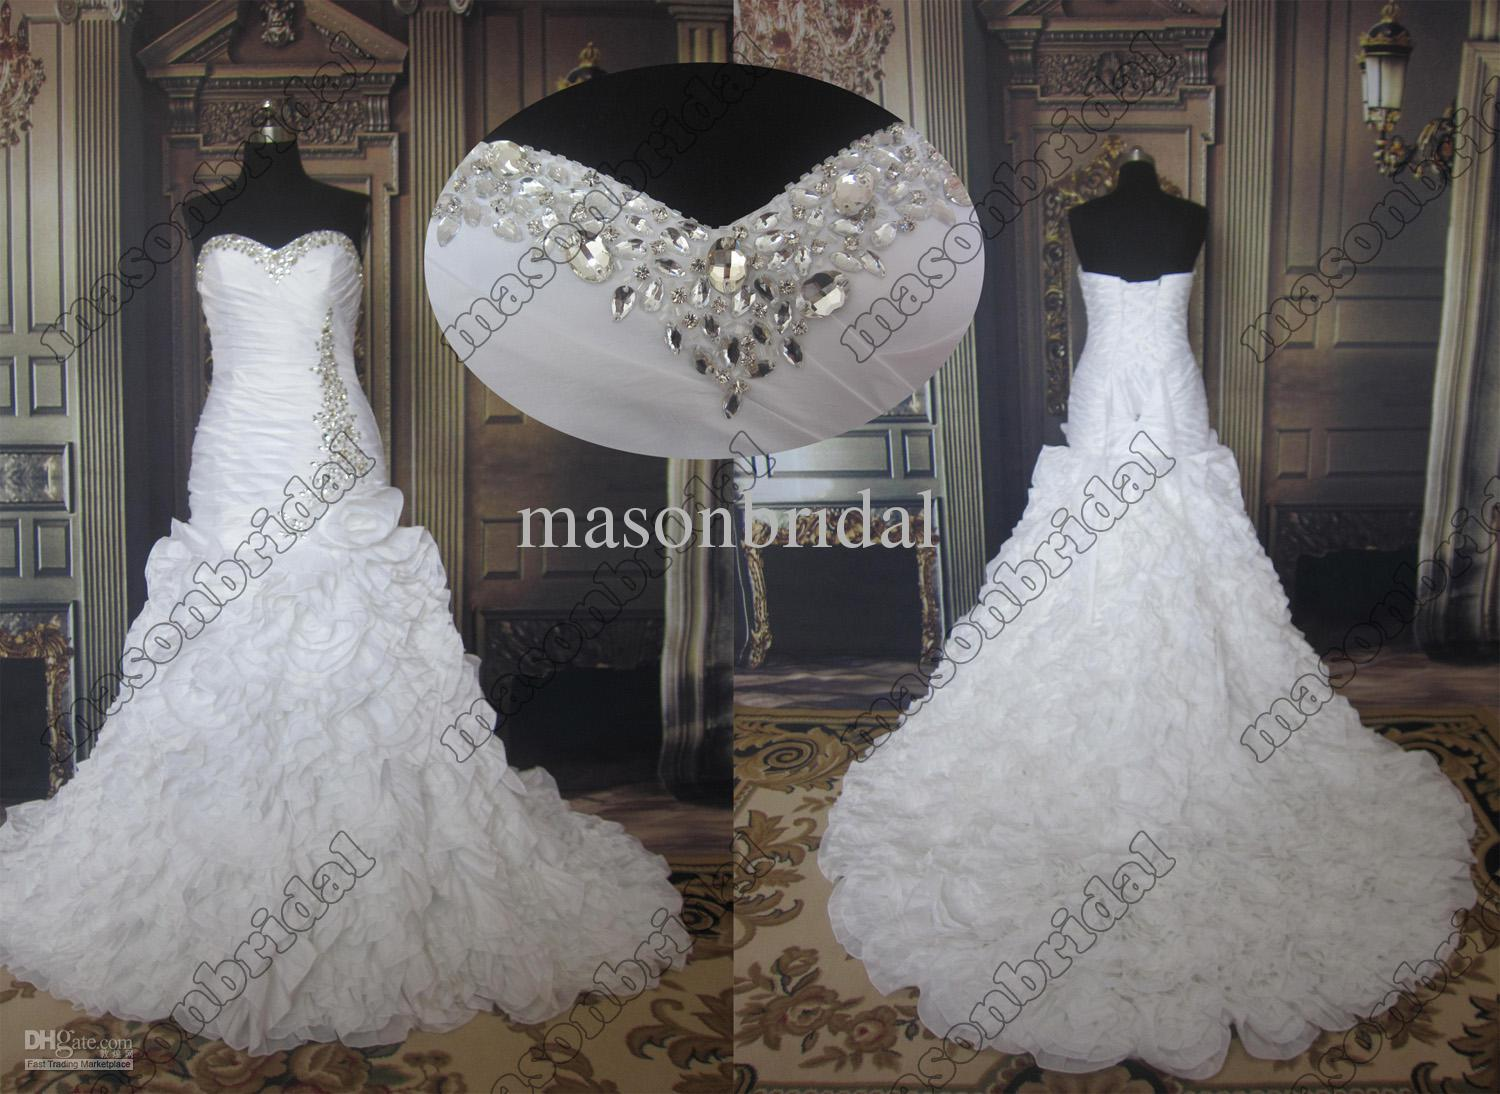 Discount new style a line satin wedding dress 2013 with hand made discount new style a line satin wedding dress 2013 with hand made flower beads long cathedral train gowns big ball gown wedding dresses bridal wedding dress ombrellifo Image collections